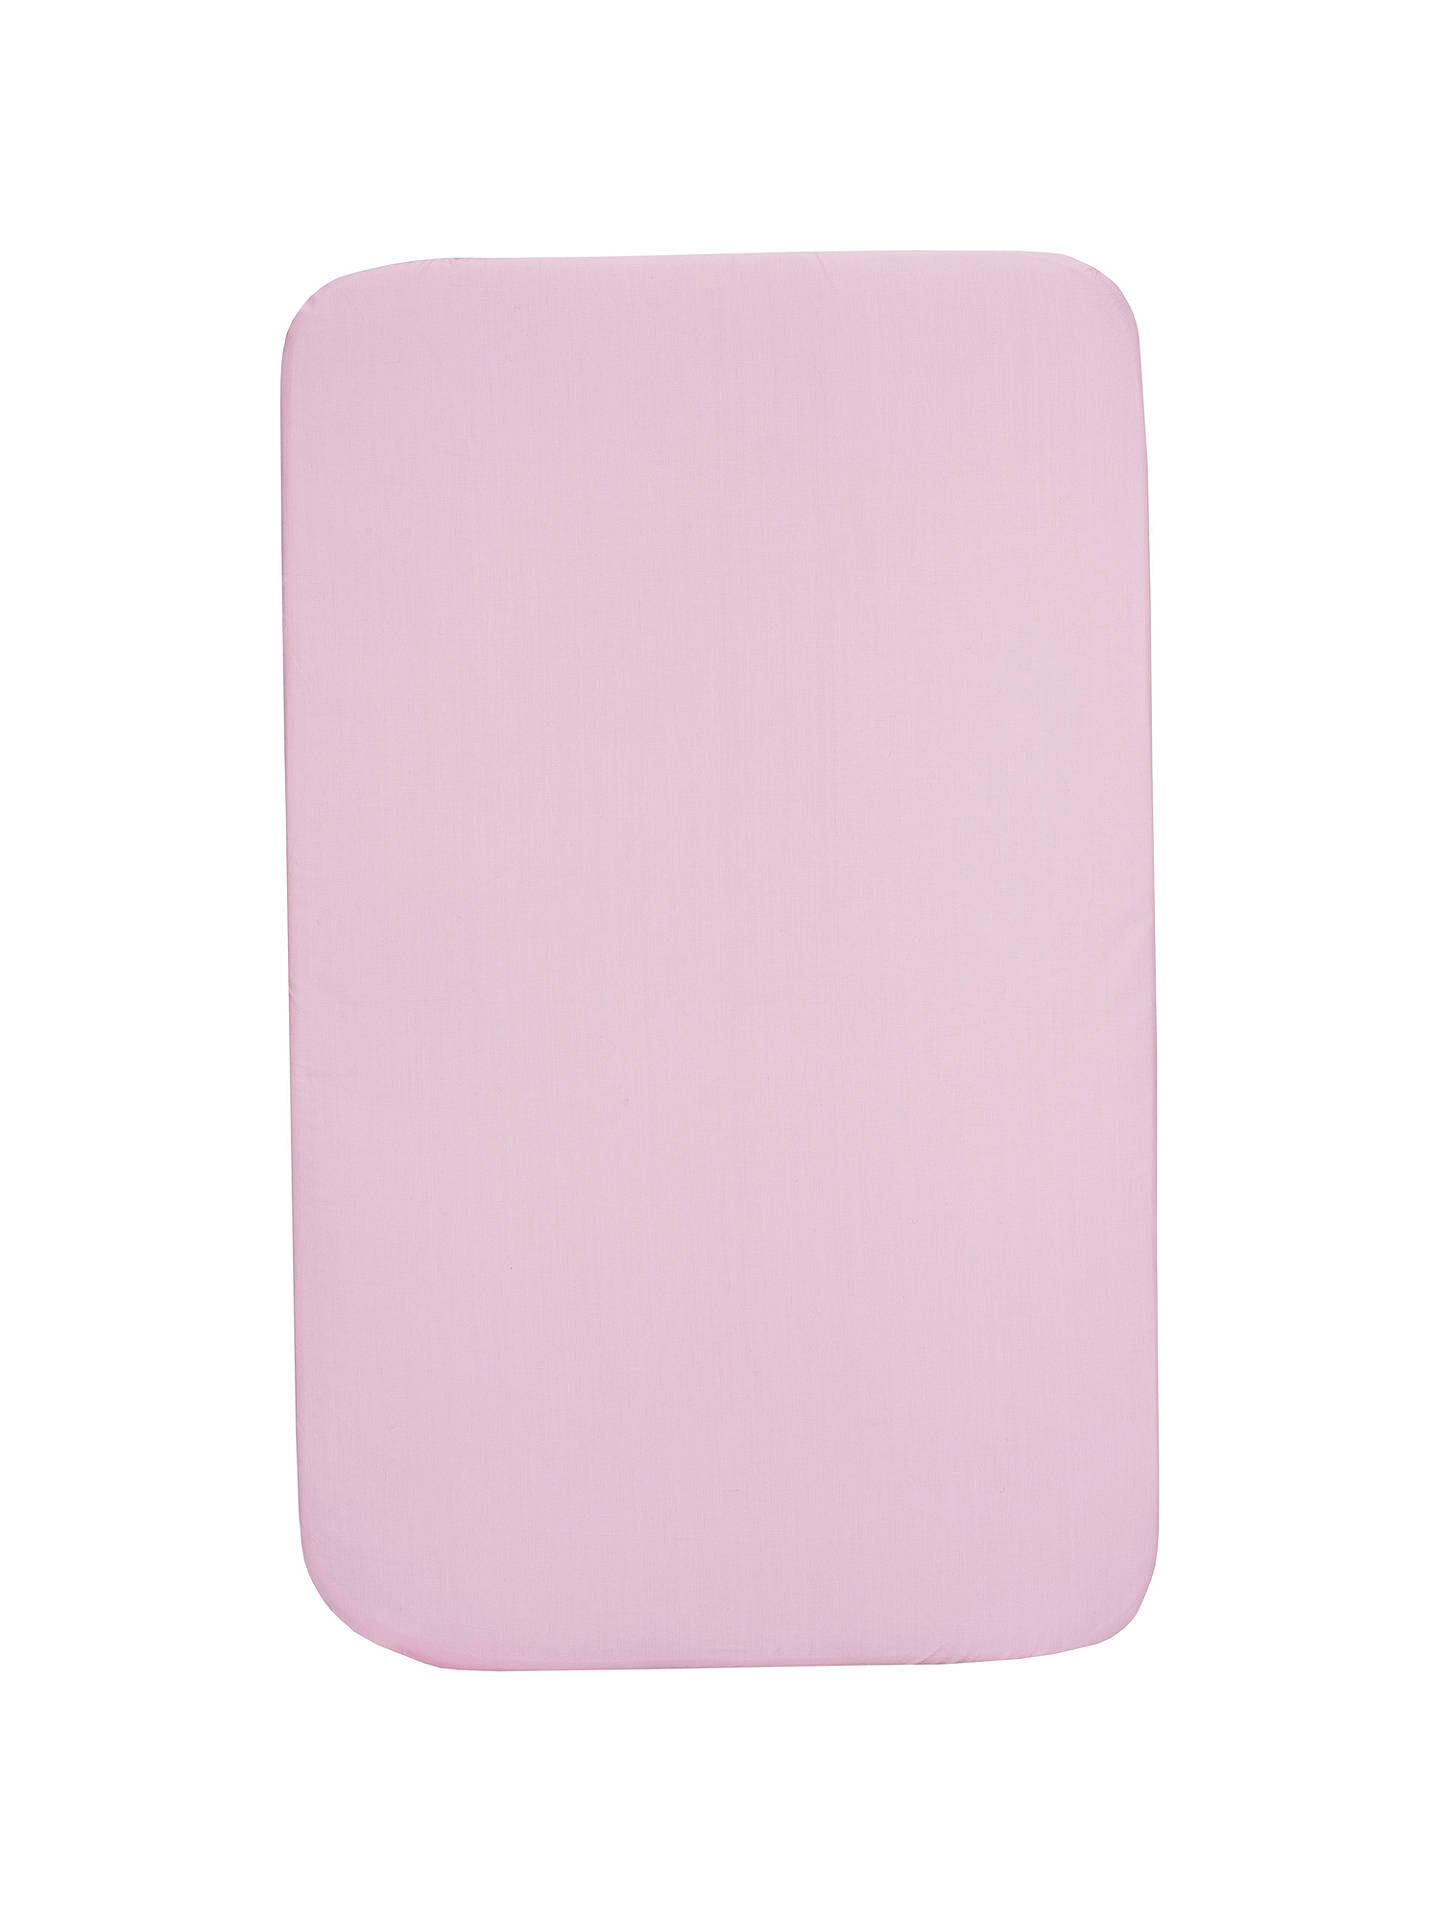 Chicco Next To Me Crib Fiited Sheets Pack Of 2 Princess At John Buy Get 20 Baby Nail Scissors Pink Massage Oil Buychicco Online Johnlewis